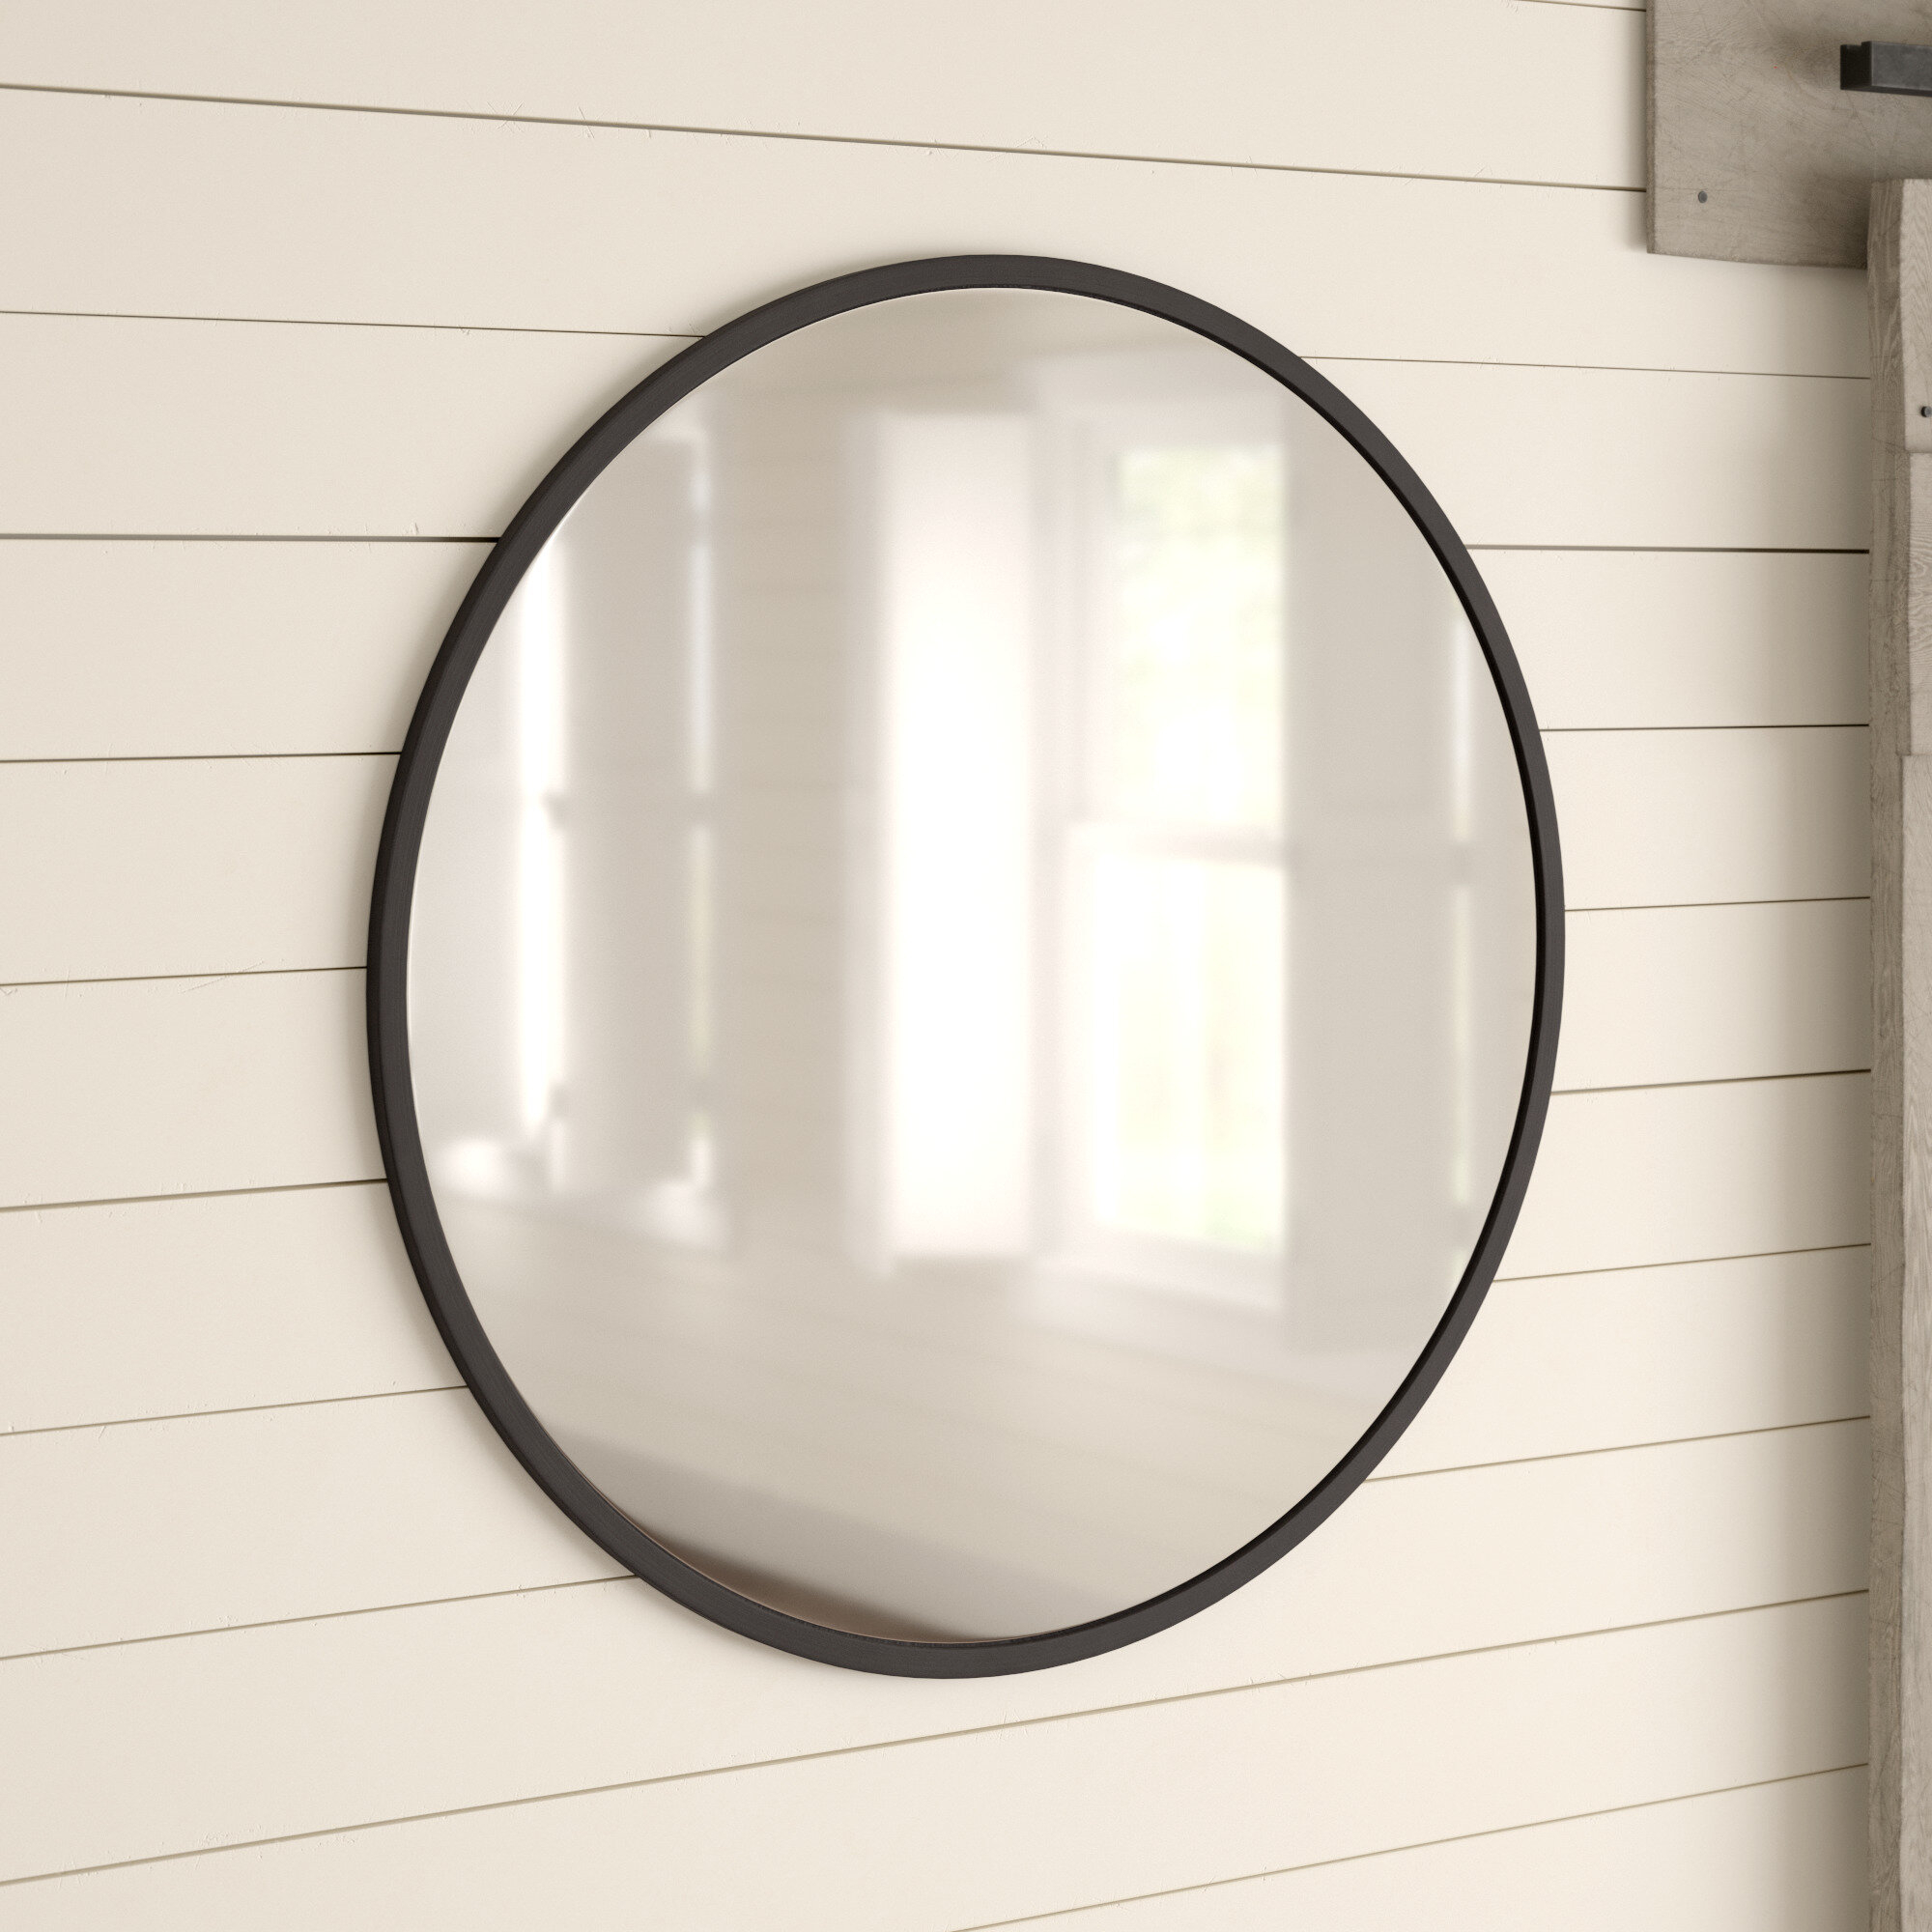 Hub Modern And Contemporary Accent Mirror With Levan Modern & Contemporary Accent Mirrors (Image 5 of 20)